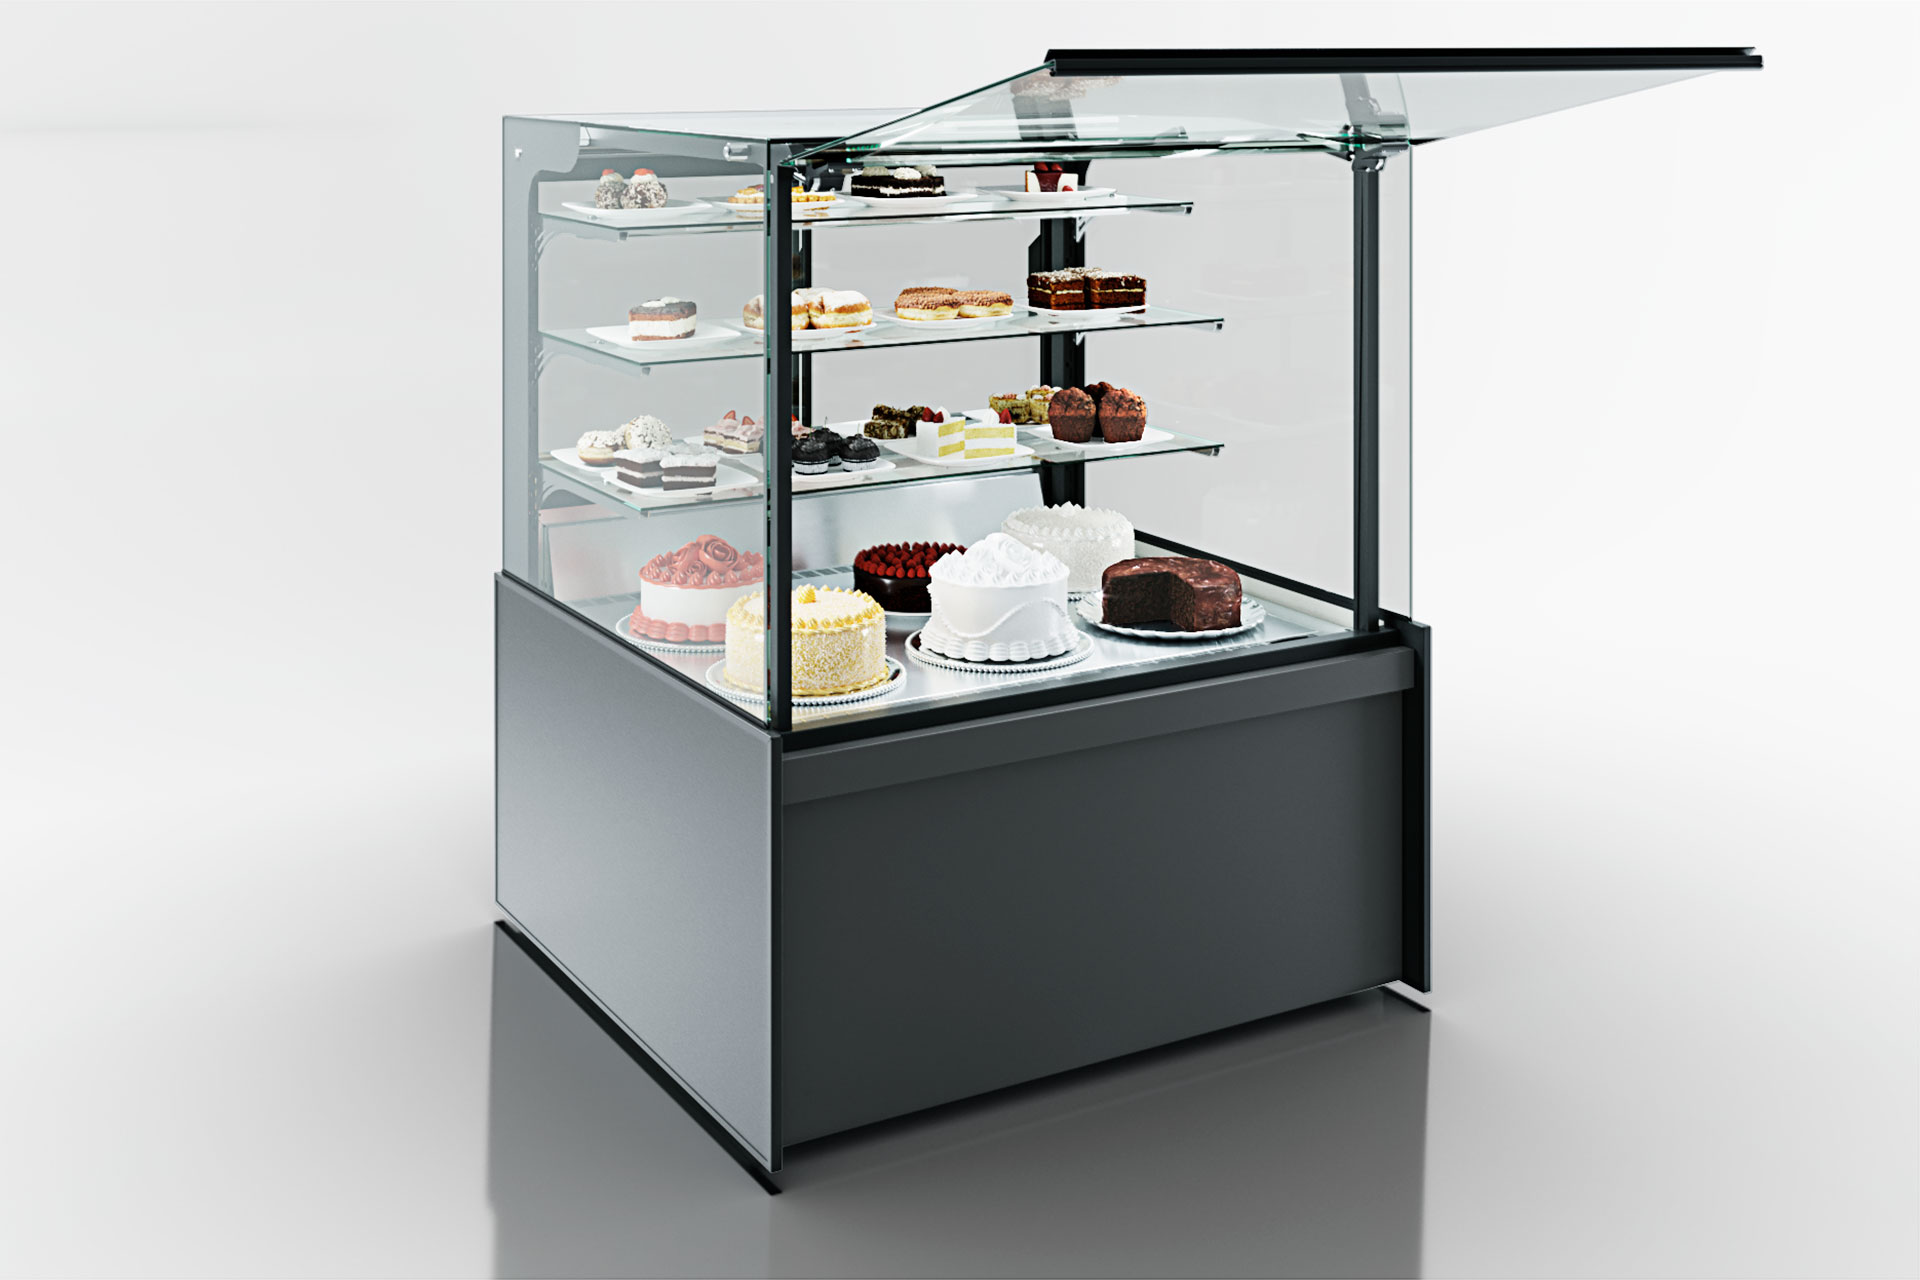 Missouri MC 120 patisserie PS 130-DLM